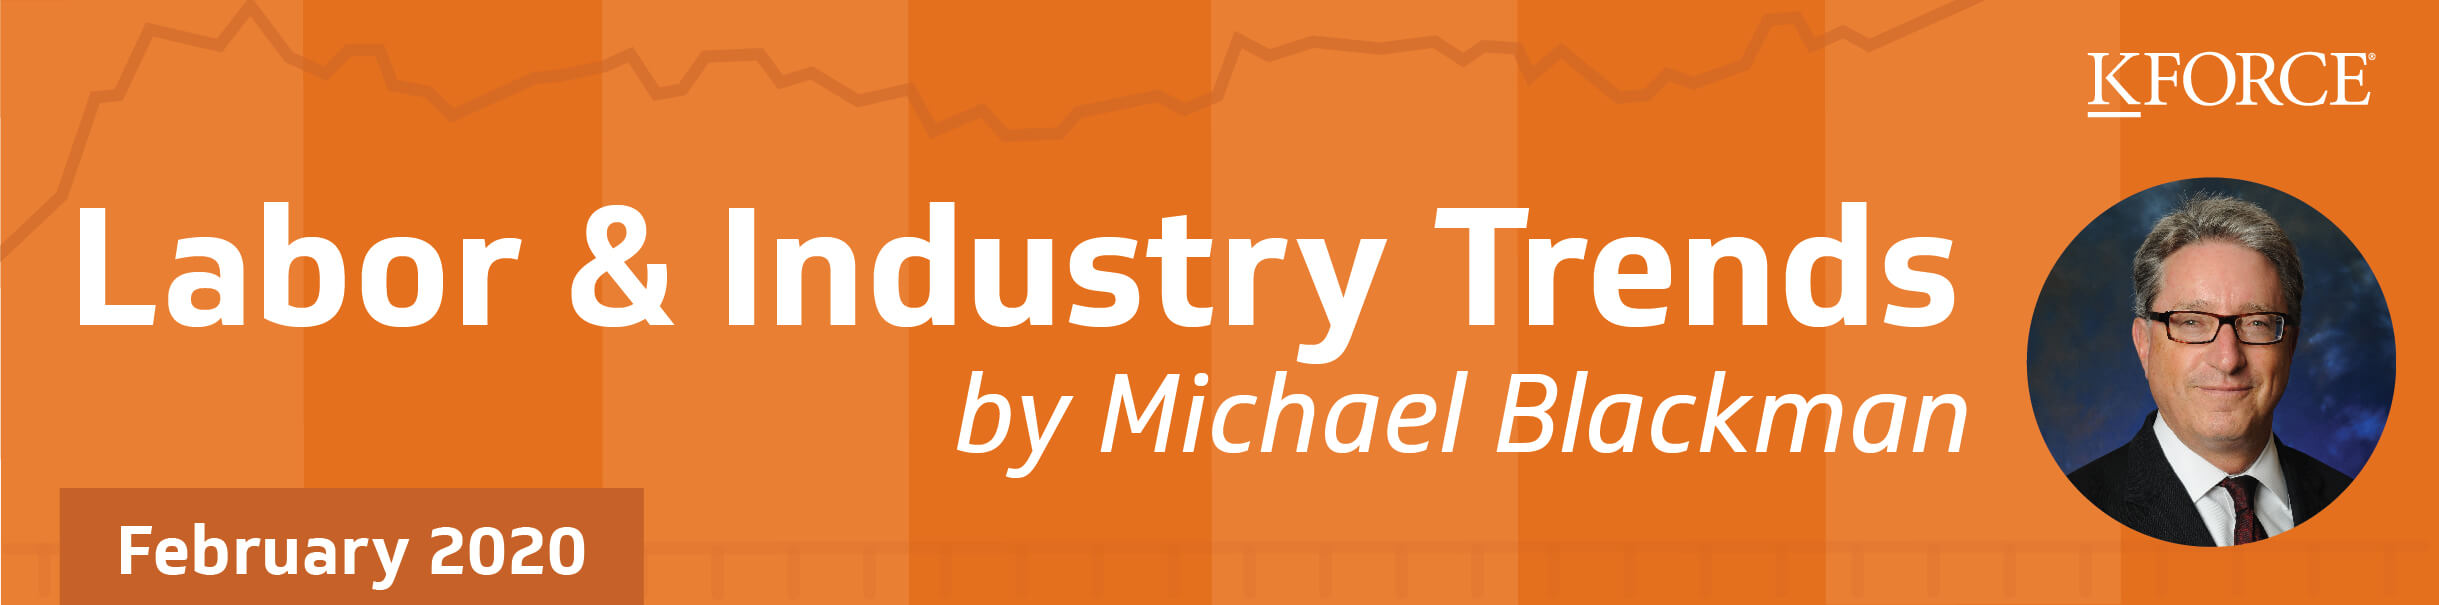 Labor and Industry Trends February 2020